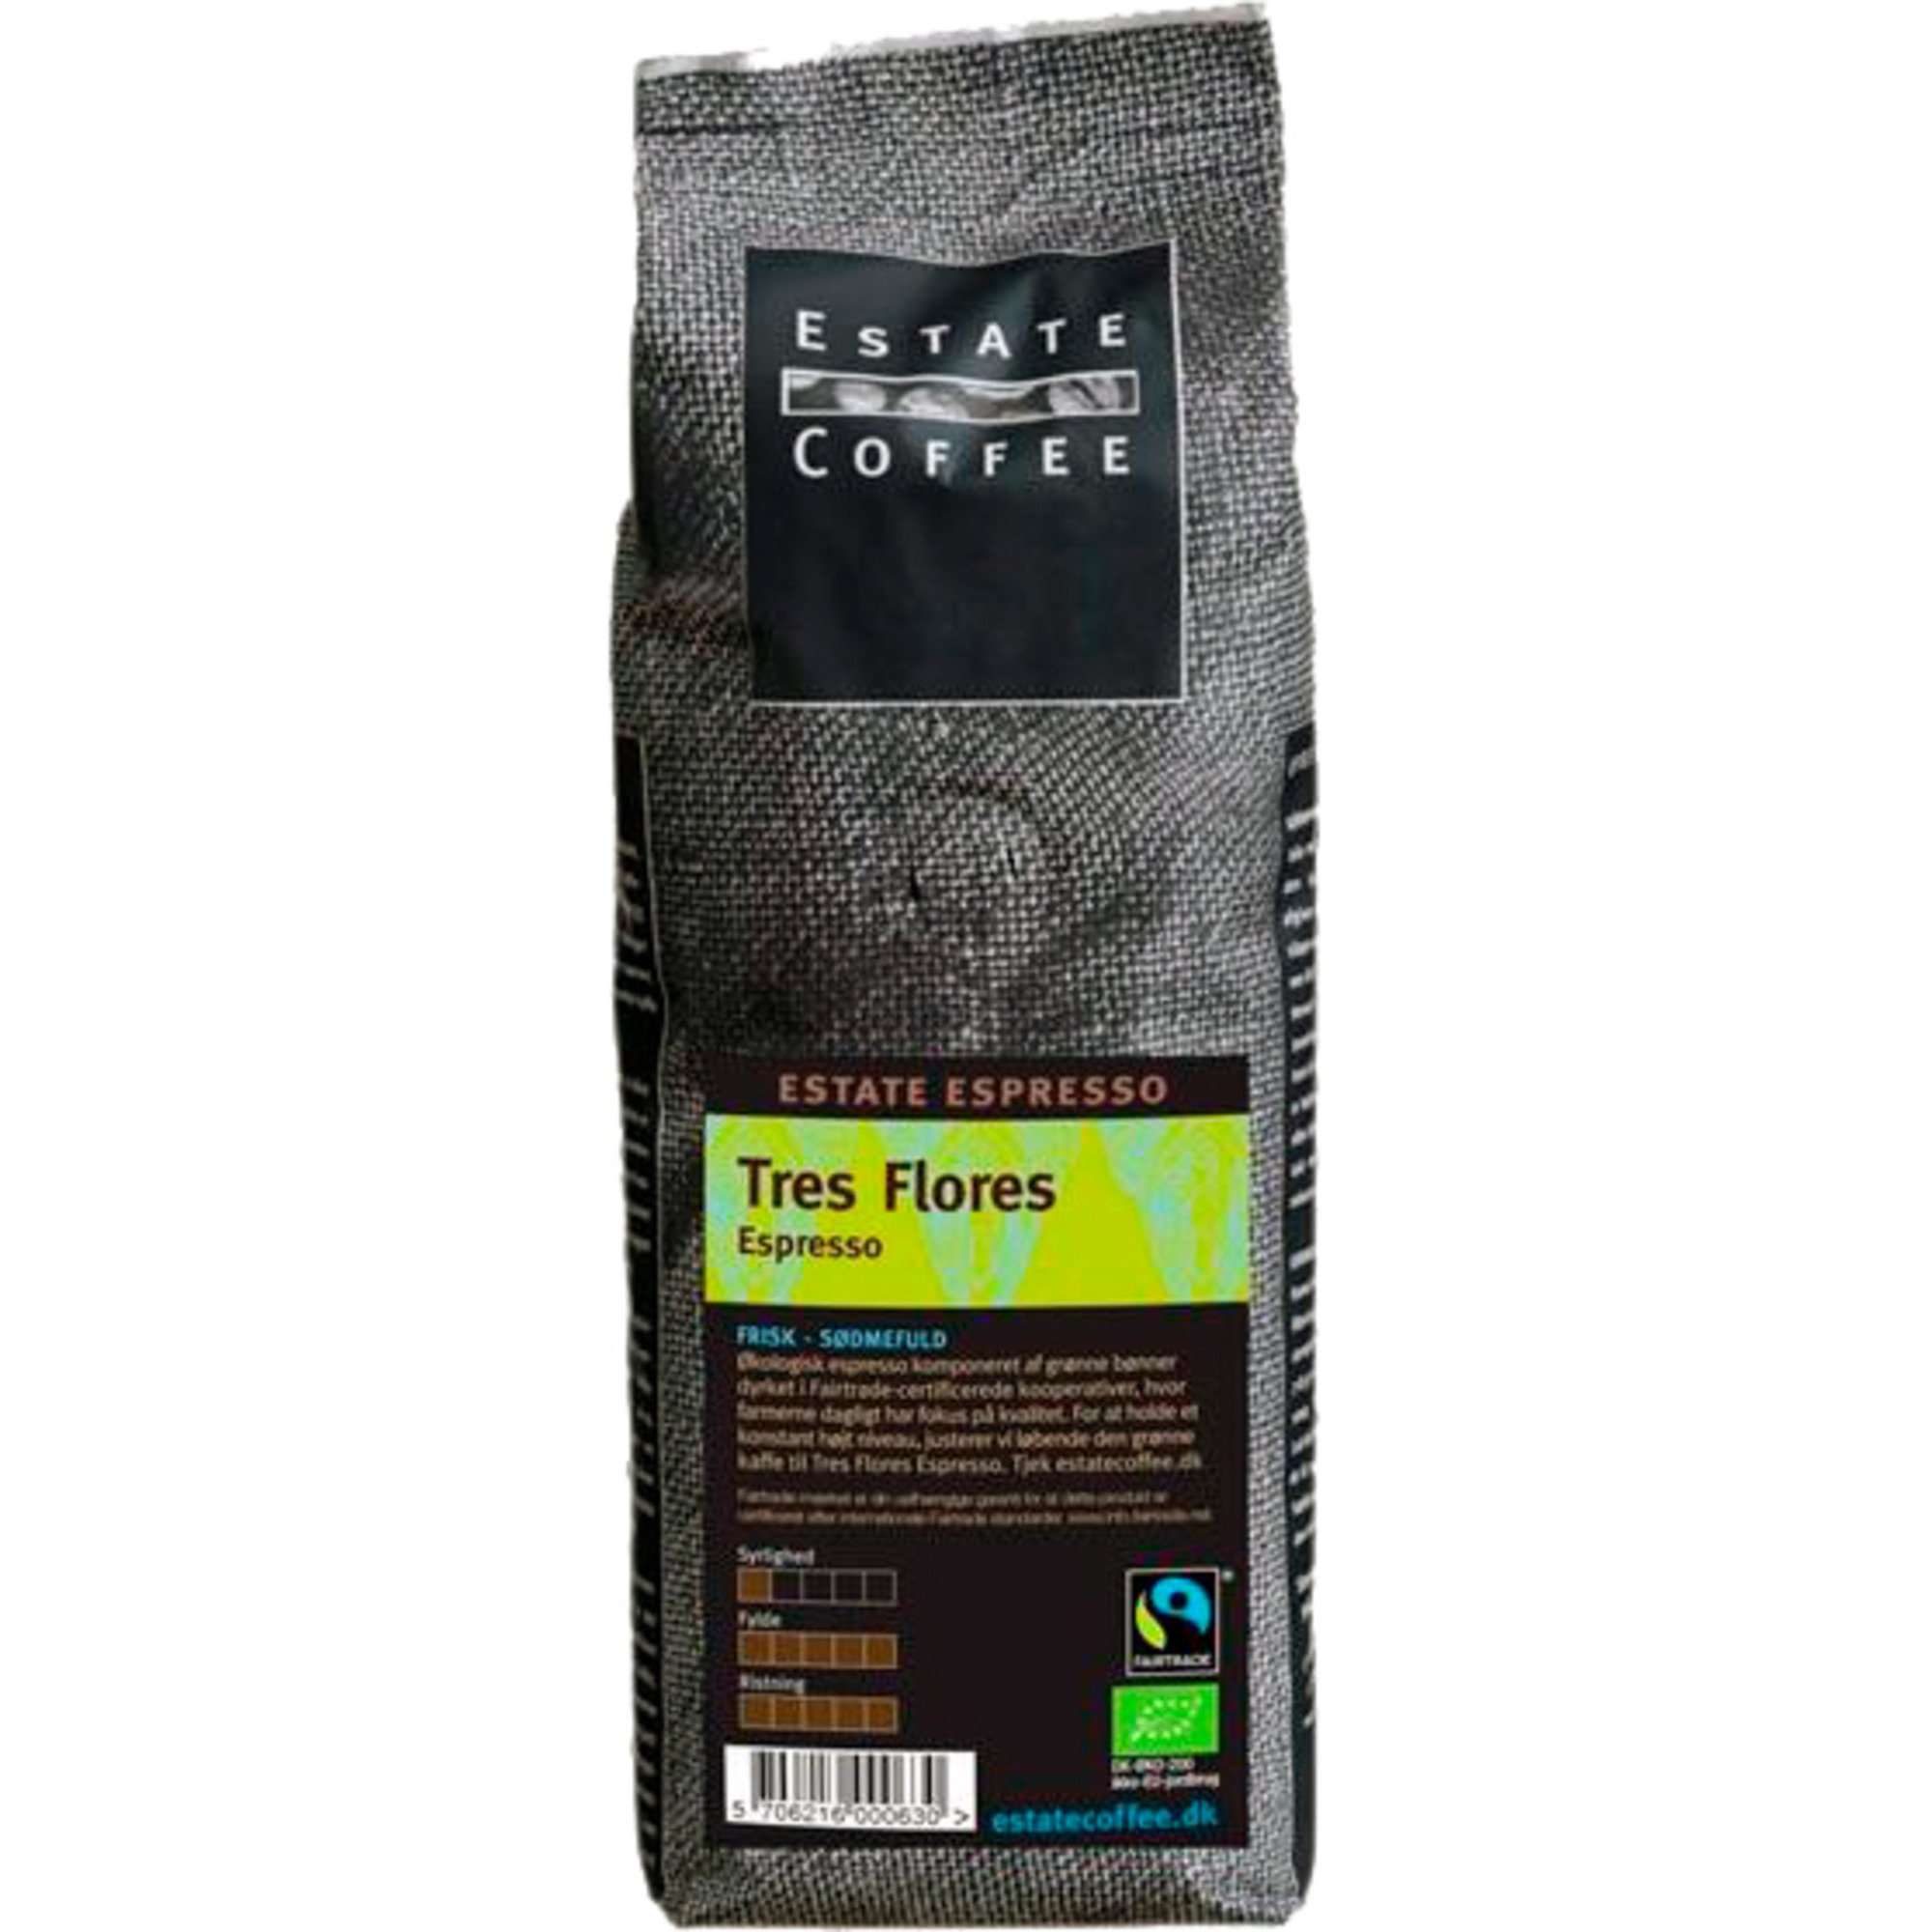 Estate Coffee Tres Flores Espresso 200g